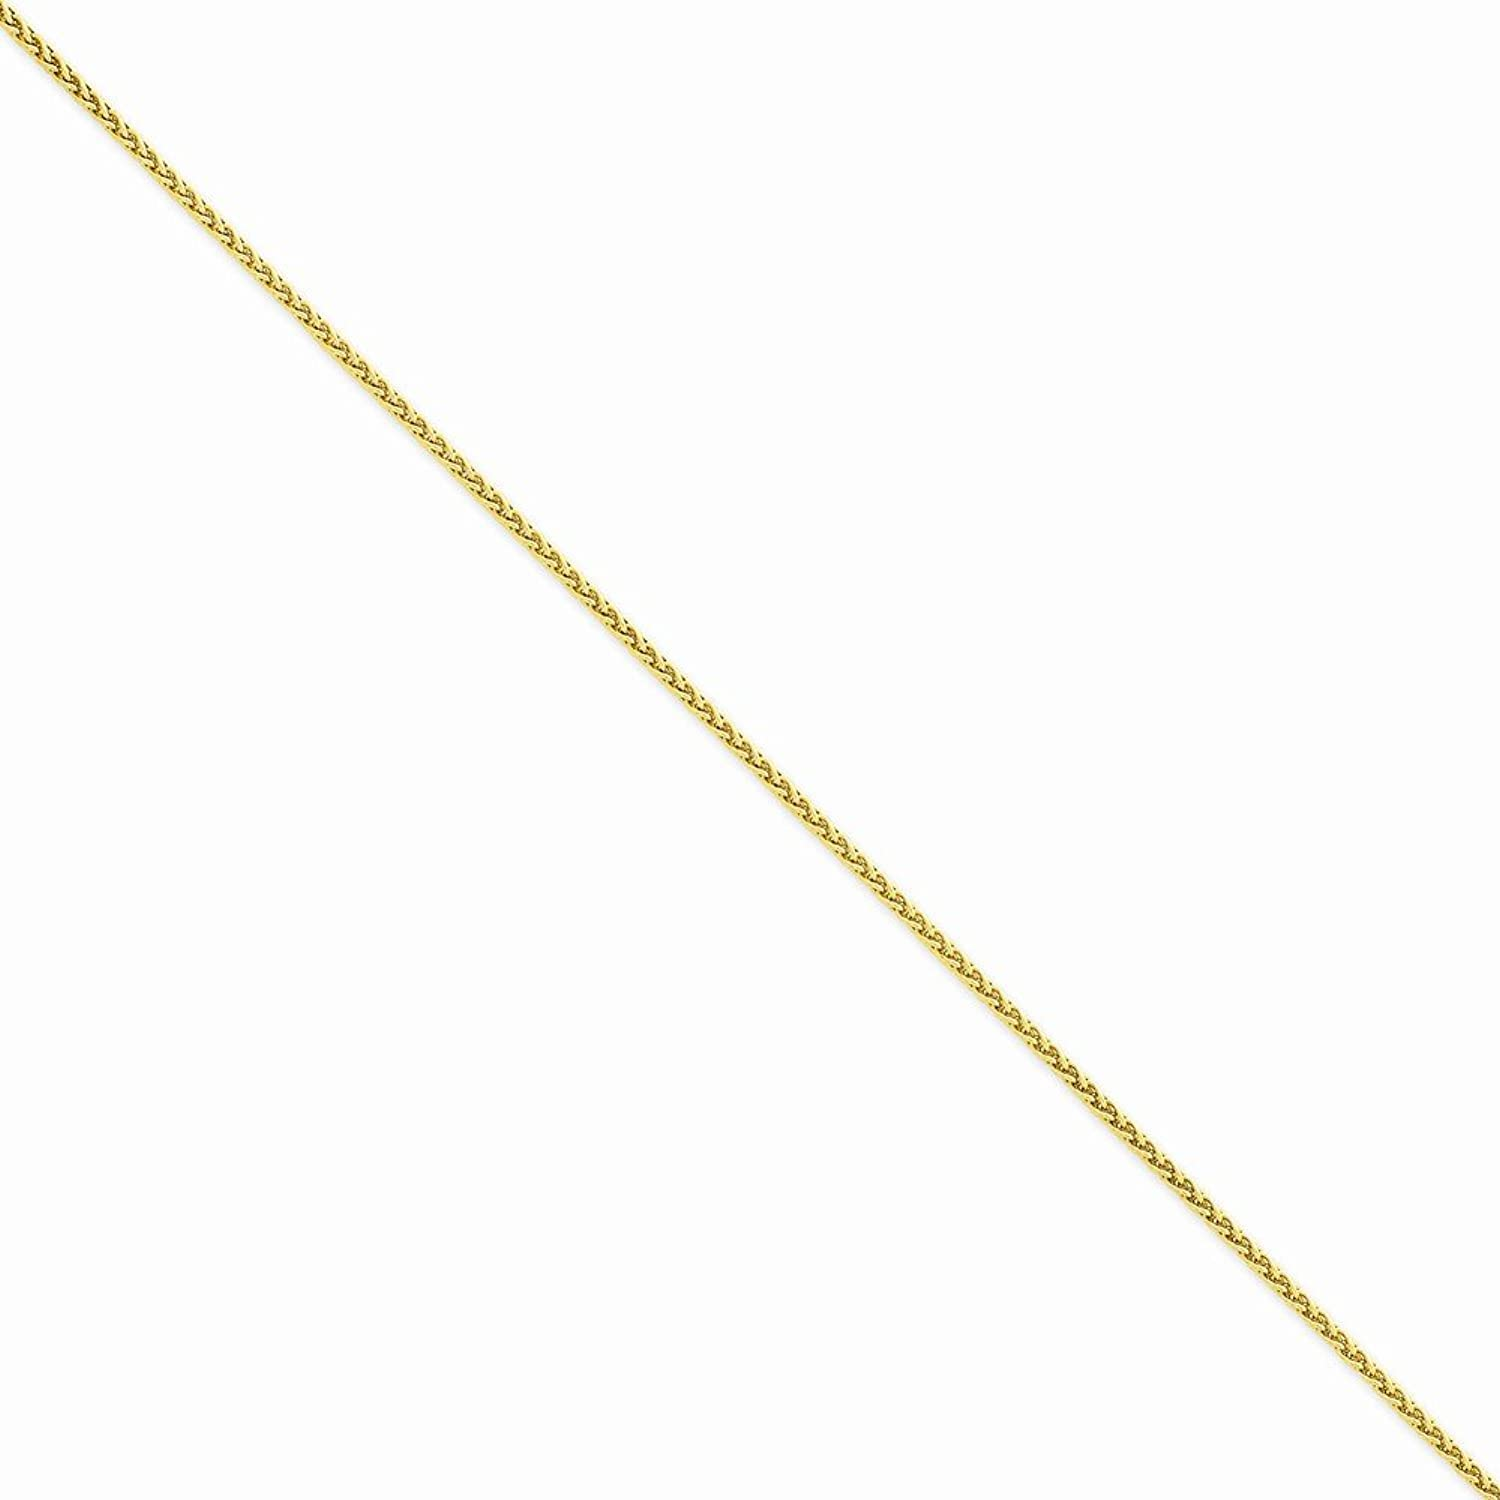 14k Yellow Gold 1.9mm Parisian Wheat Chain Anklet 10 Inches